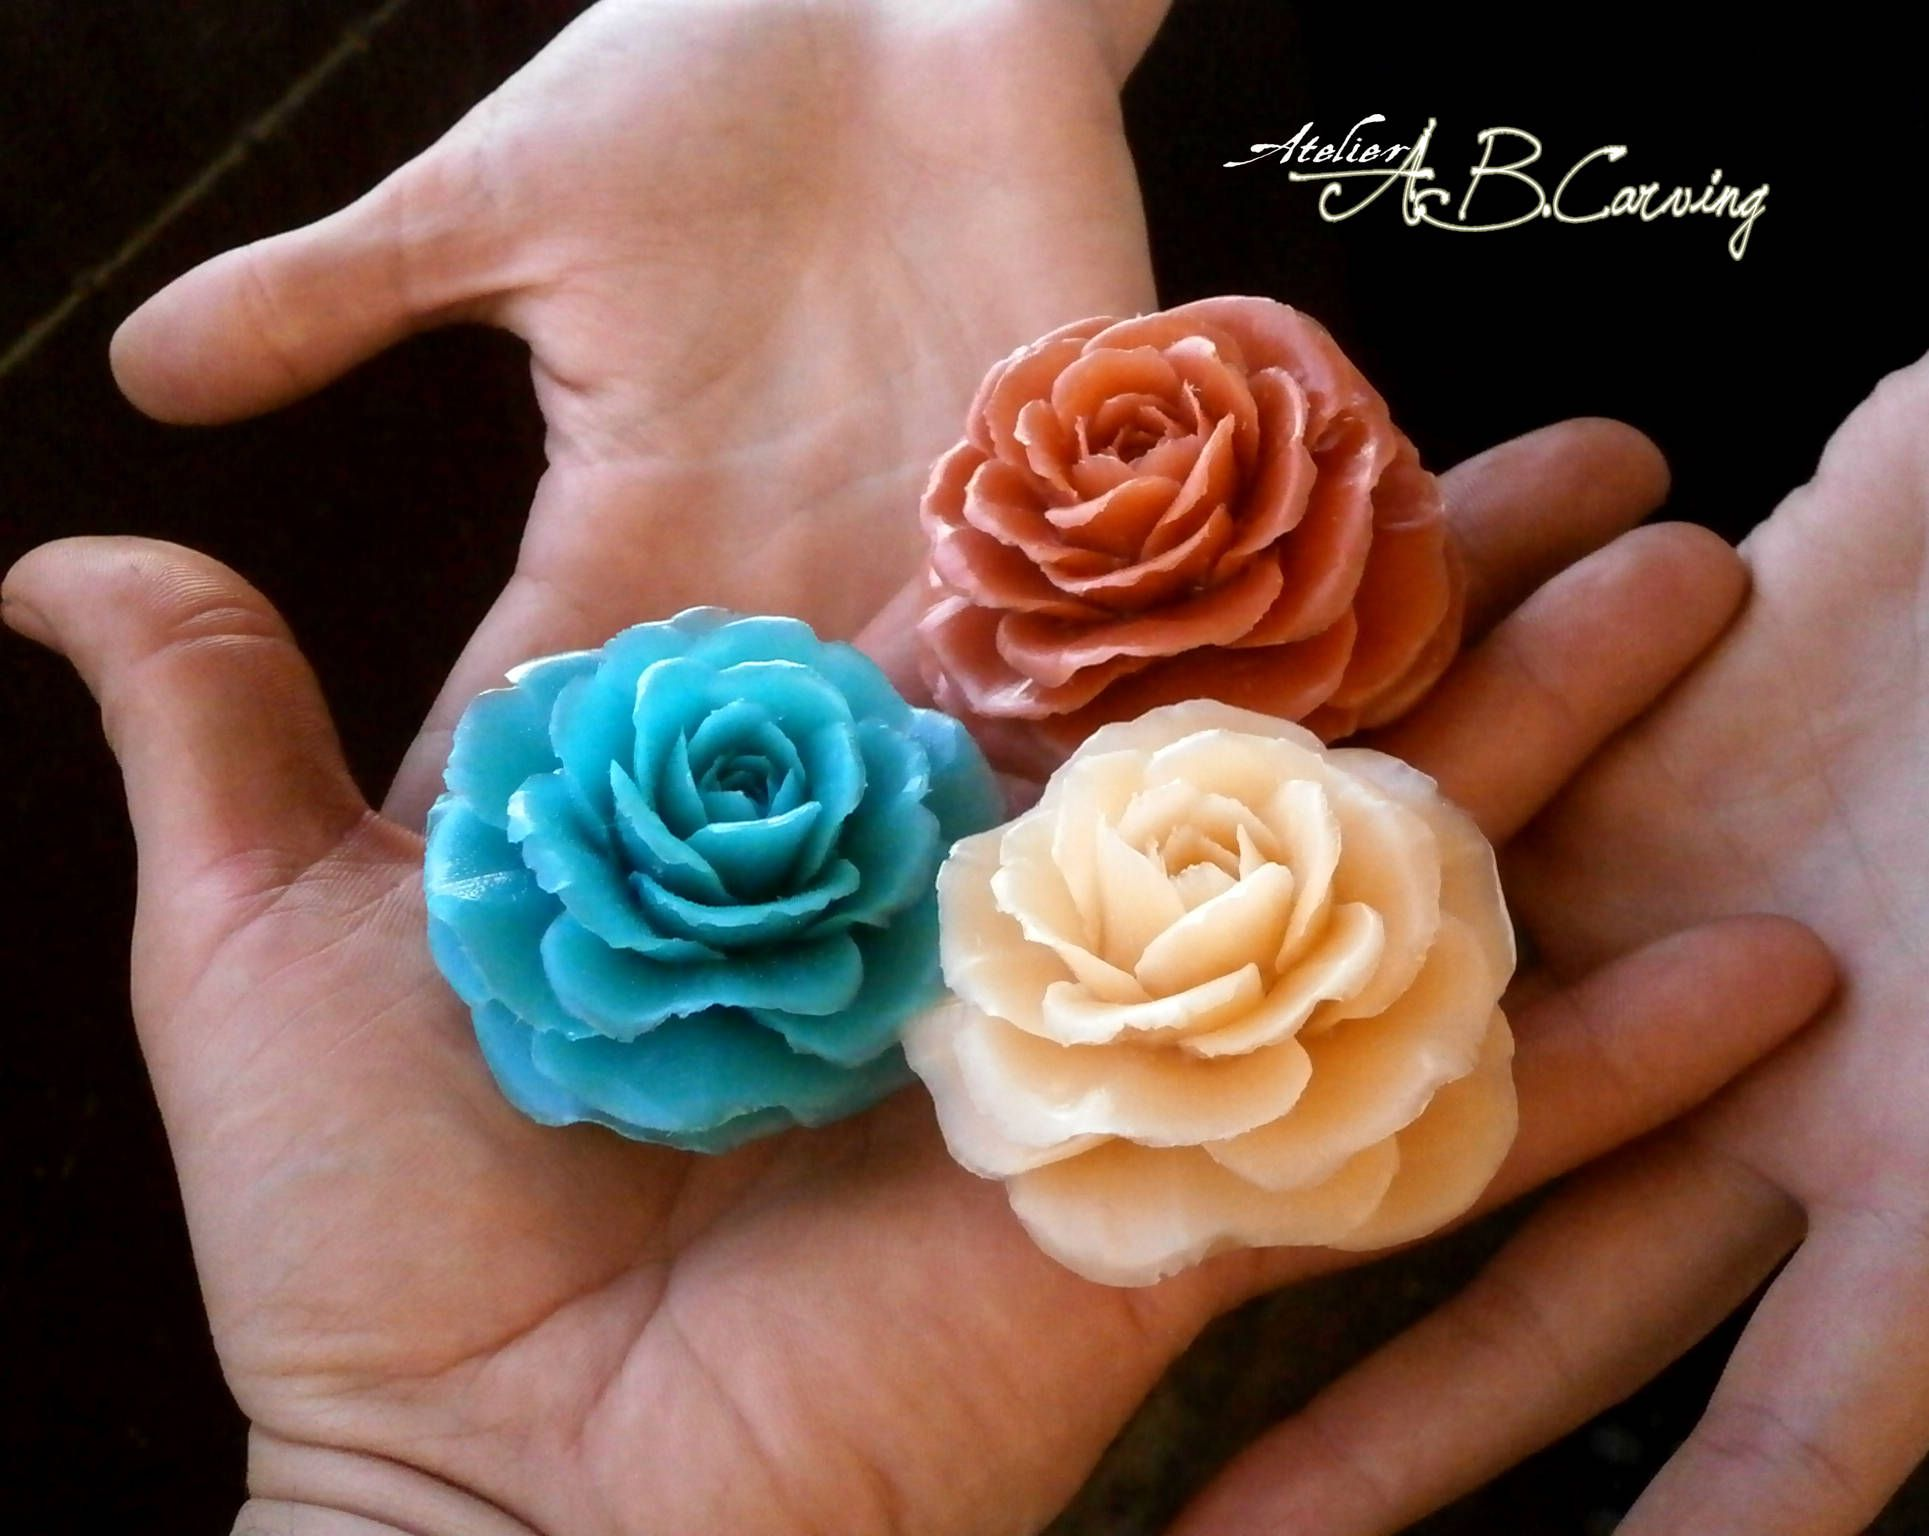 Carving soap roses tiny soap roses guest soap gift rose scented